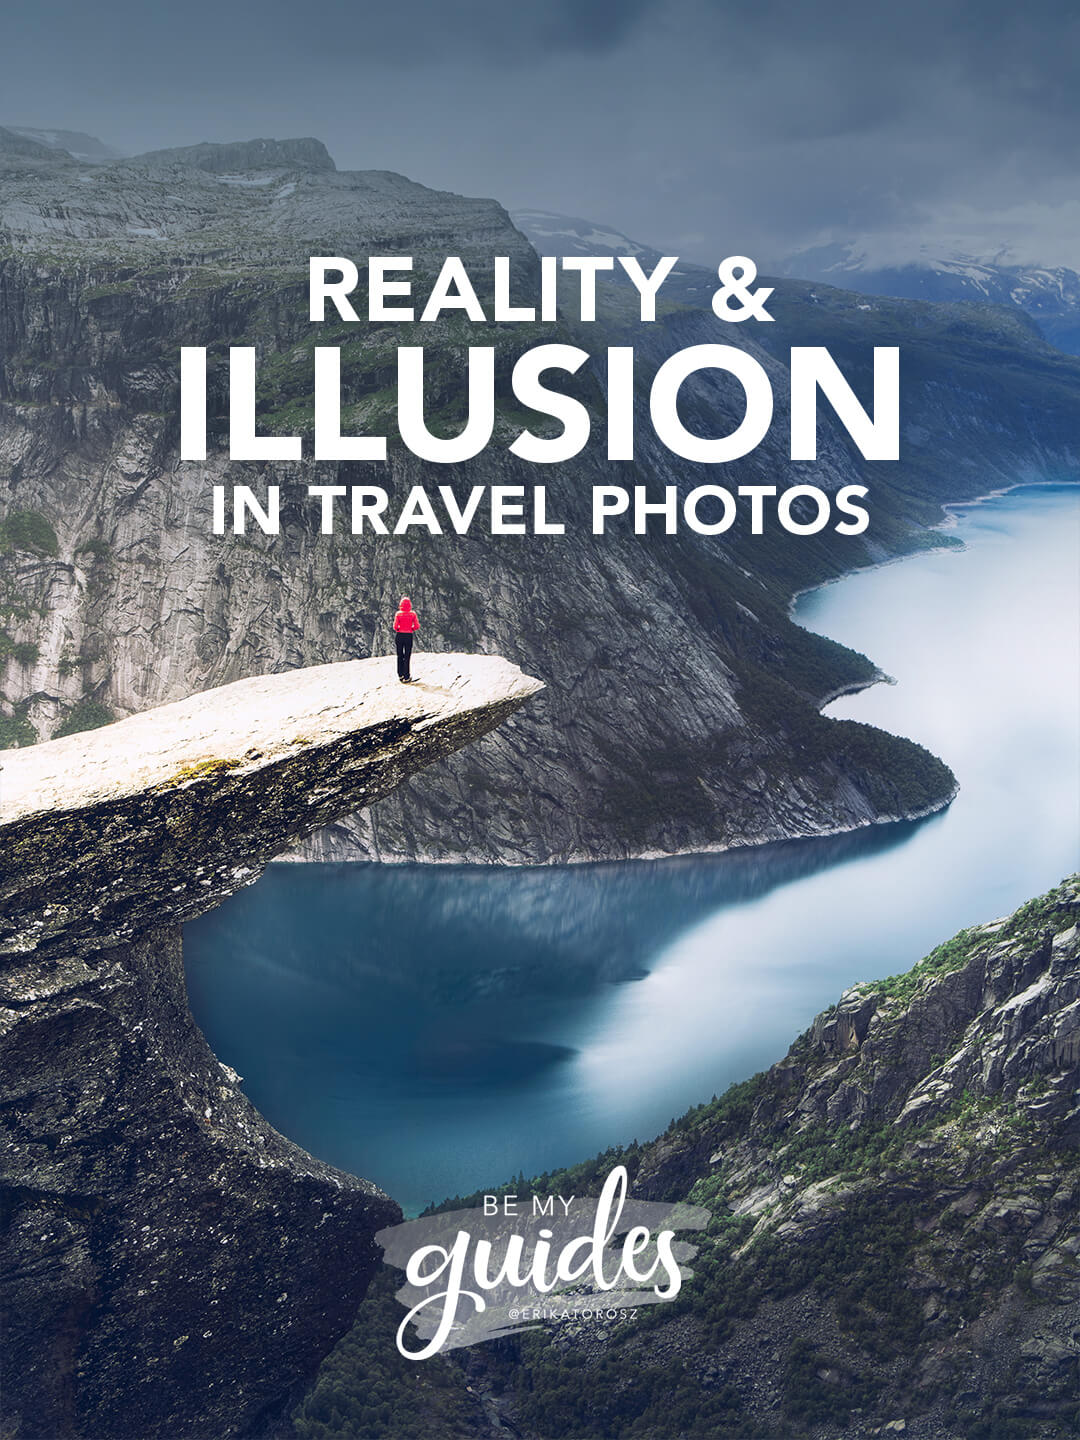 REALITY AND ILLUSION IN INSTAGRAM TRAVEL PHOTOS